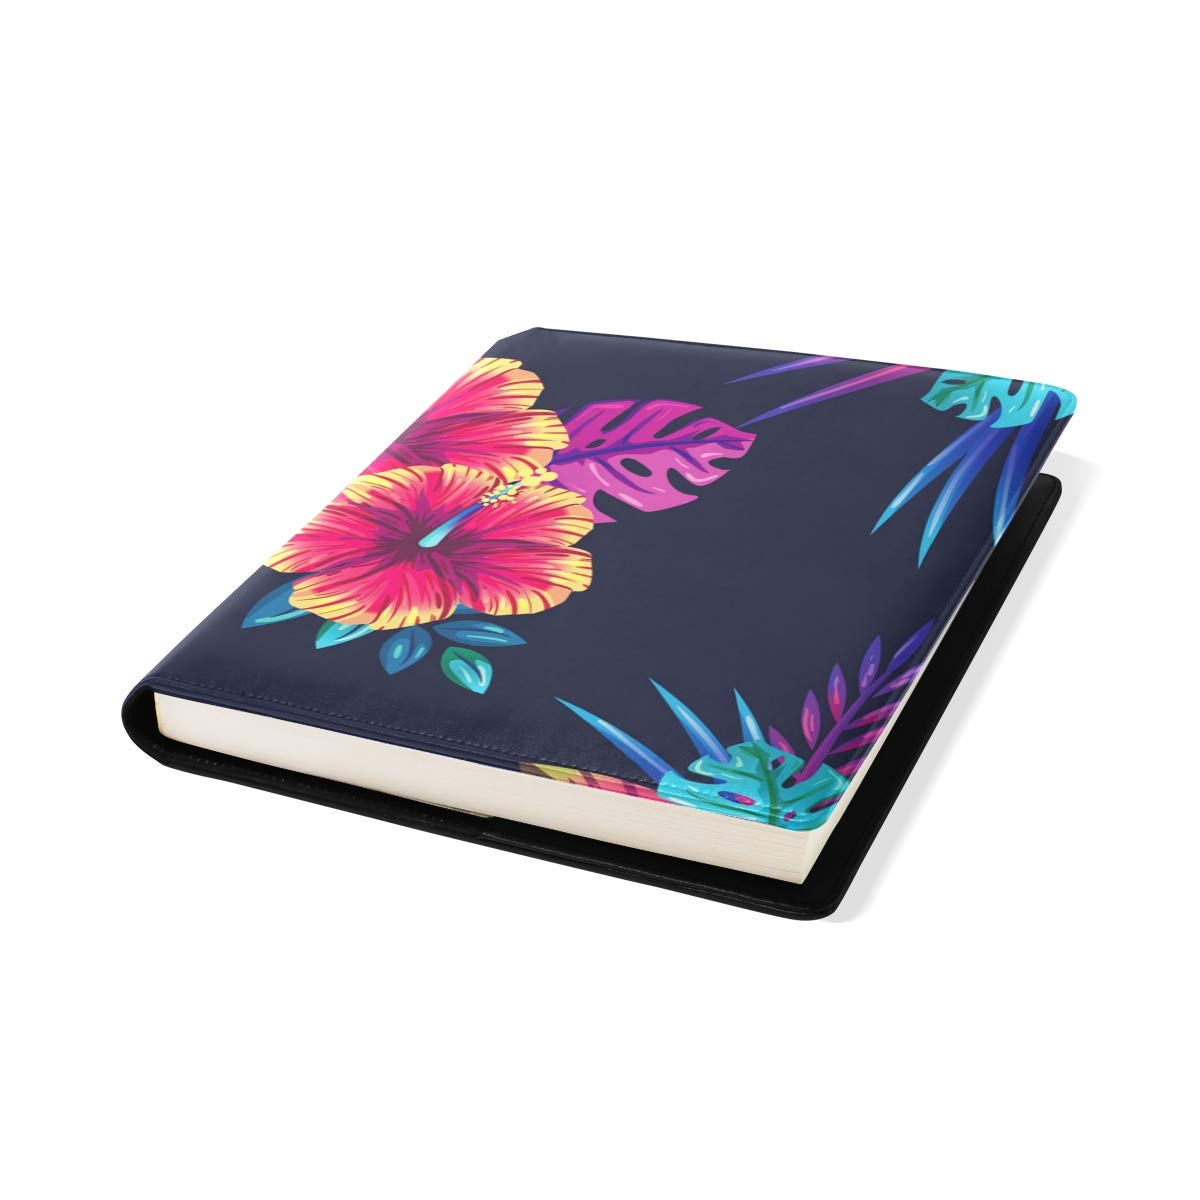 Jumbo Size Book Covers Notebook Textbook School Supplies Office Homecoming Tropical Purple Foral